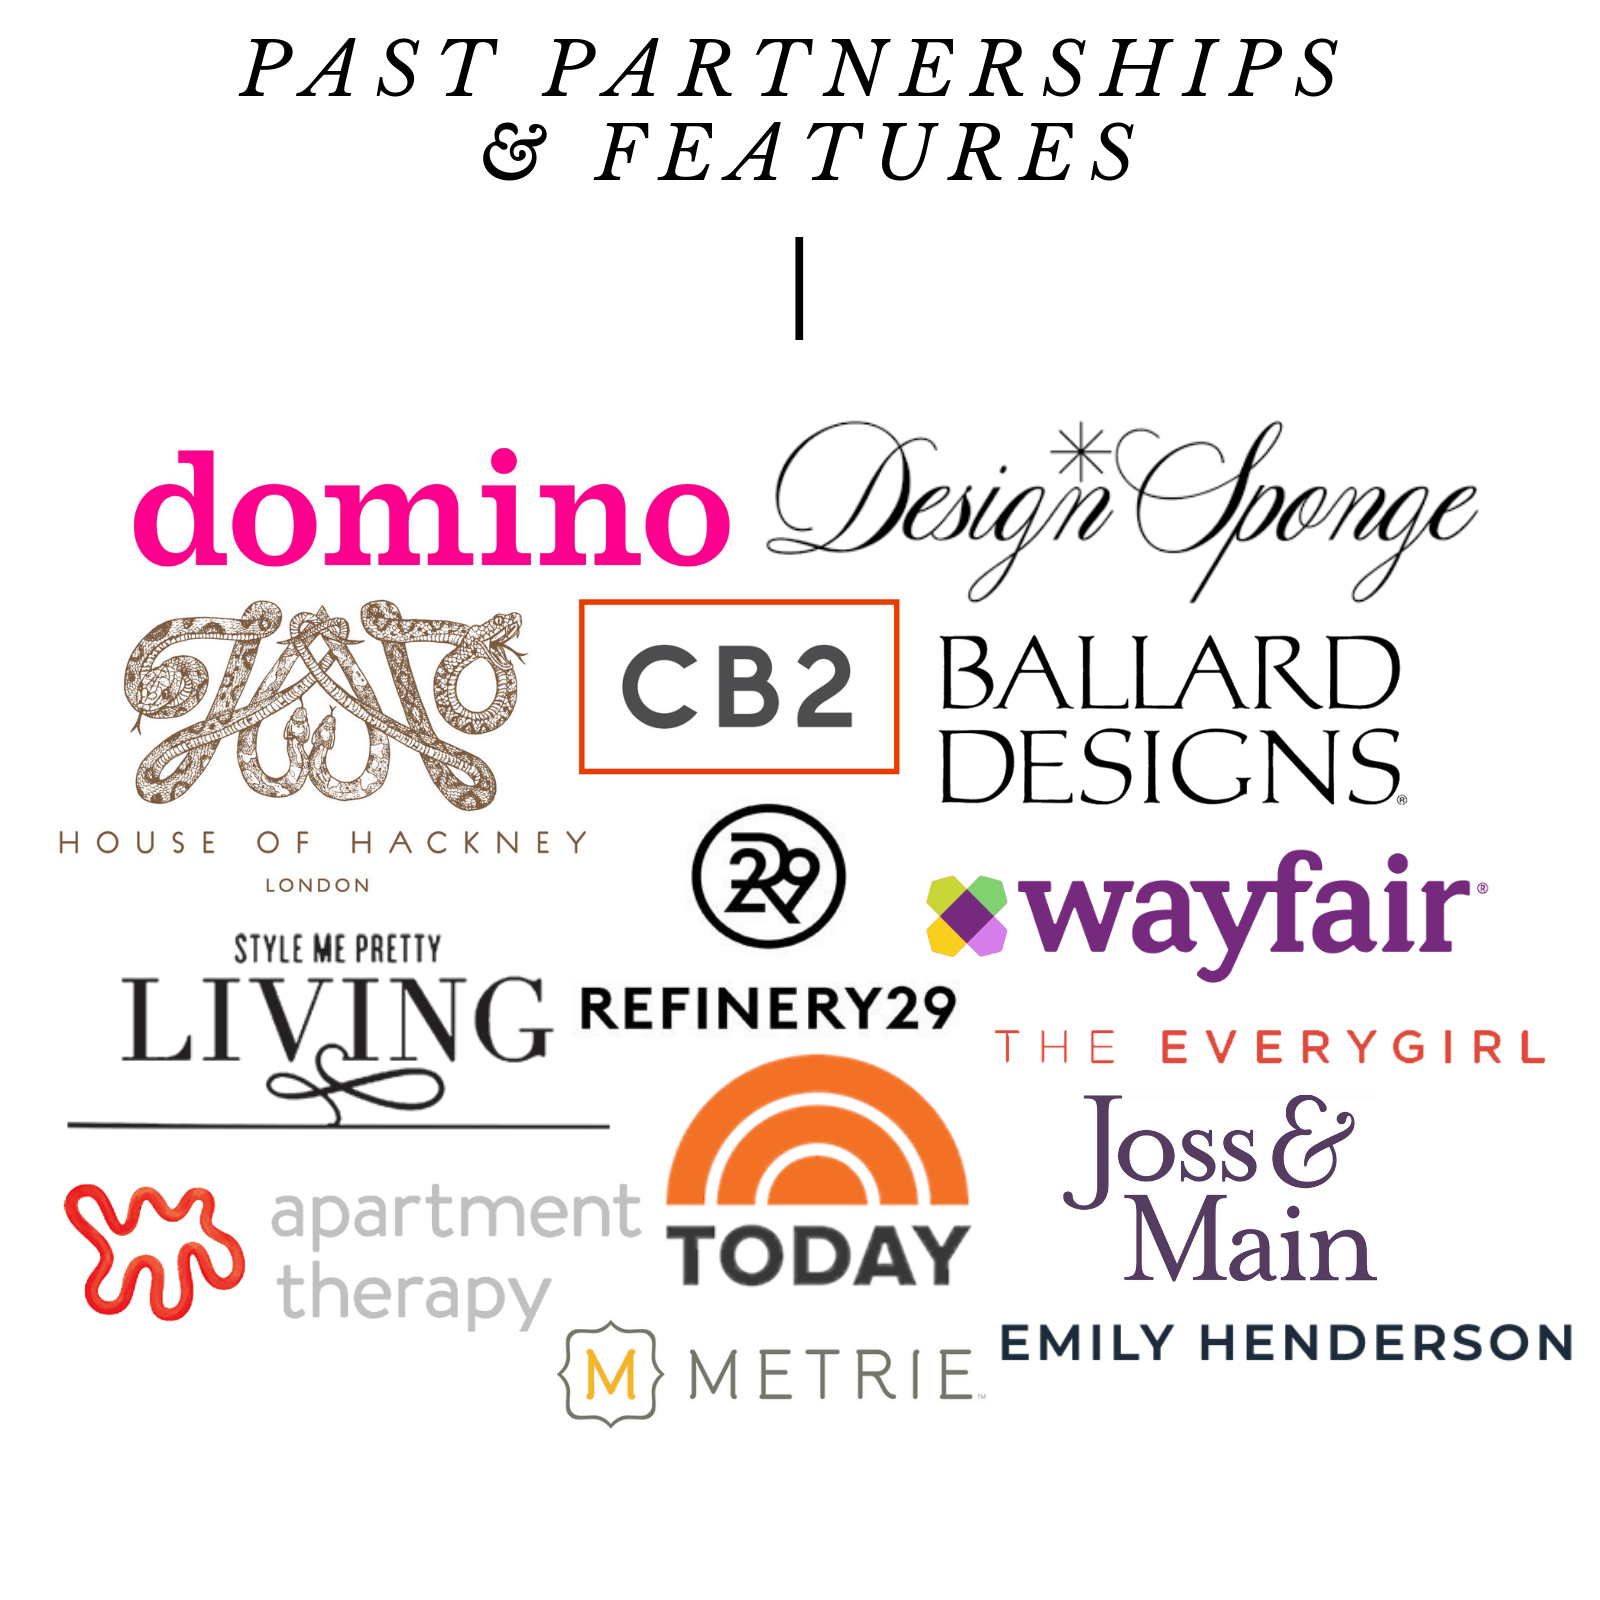 PAST-PARTNERS-AND-FEATURES